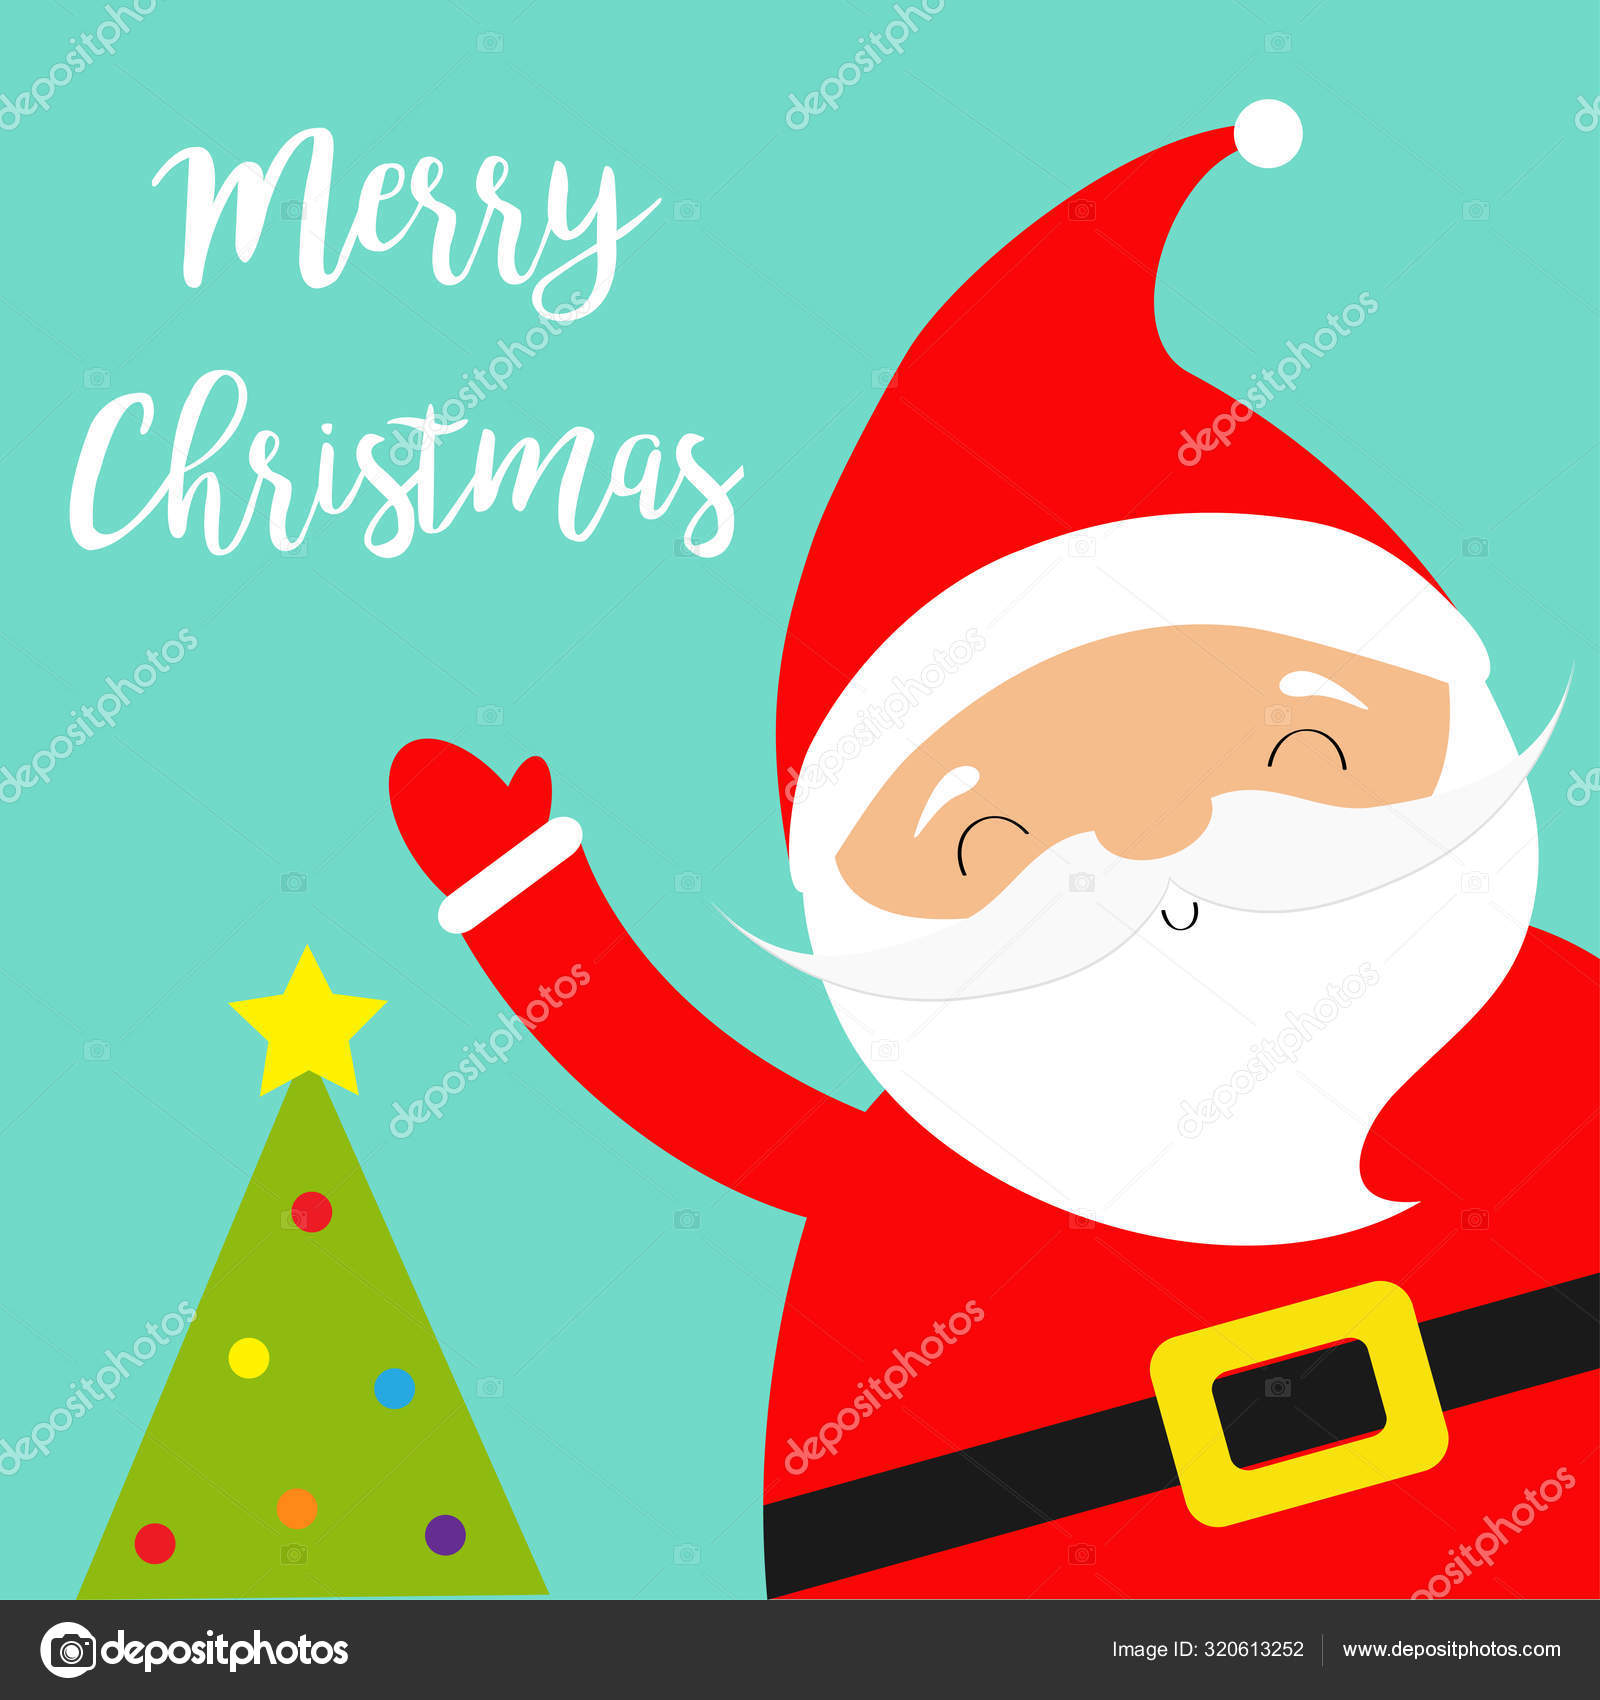 Santa Claus Waving Hand Merry Christmas Tree Costume Red Hat Golden Belt Beard Cute Cartoon Kawaii Funny Baby Character Smiling Face New Year Greeting Card Blue Background Stock Vector C Worldofvector 320613252 Kawaii doodles kawaii chibi kawaii art christmas tree drawing cute christmas tree cartoon christmas tree xmas felt christmas christmas ornaments. depositphotos